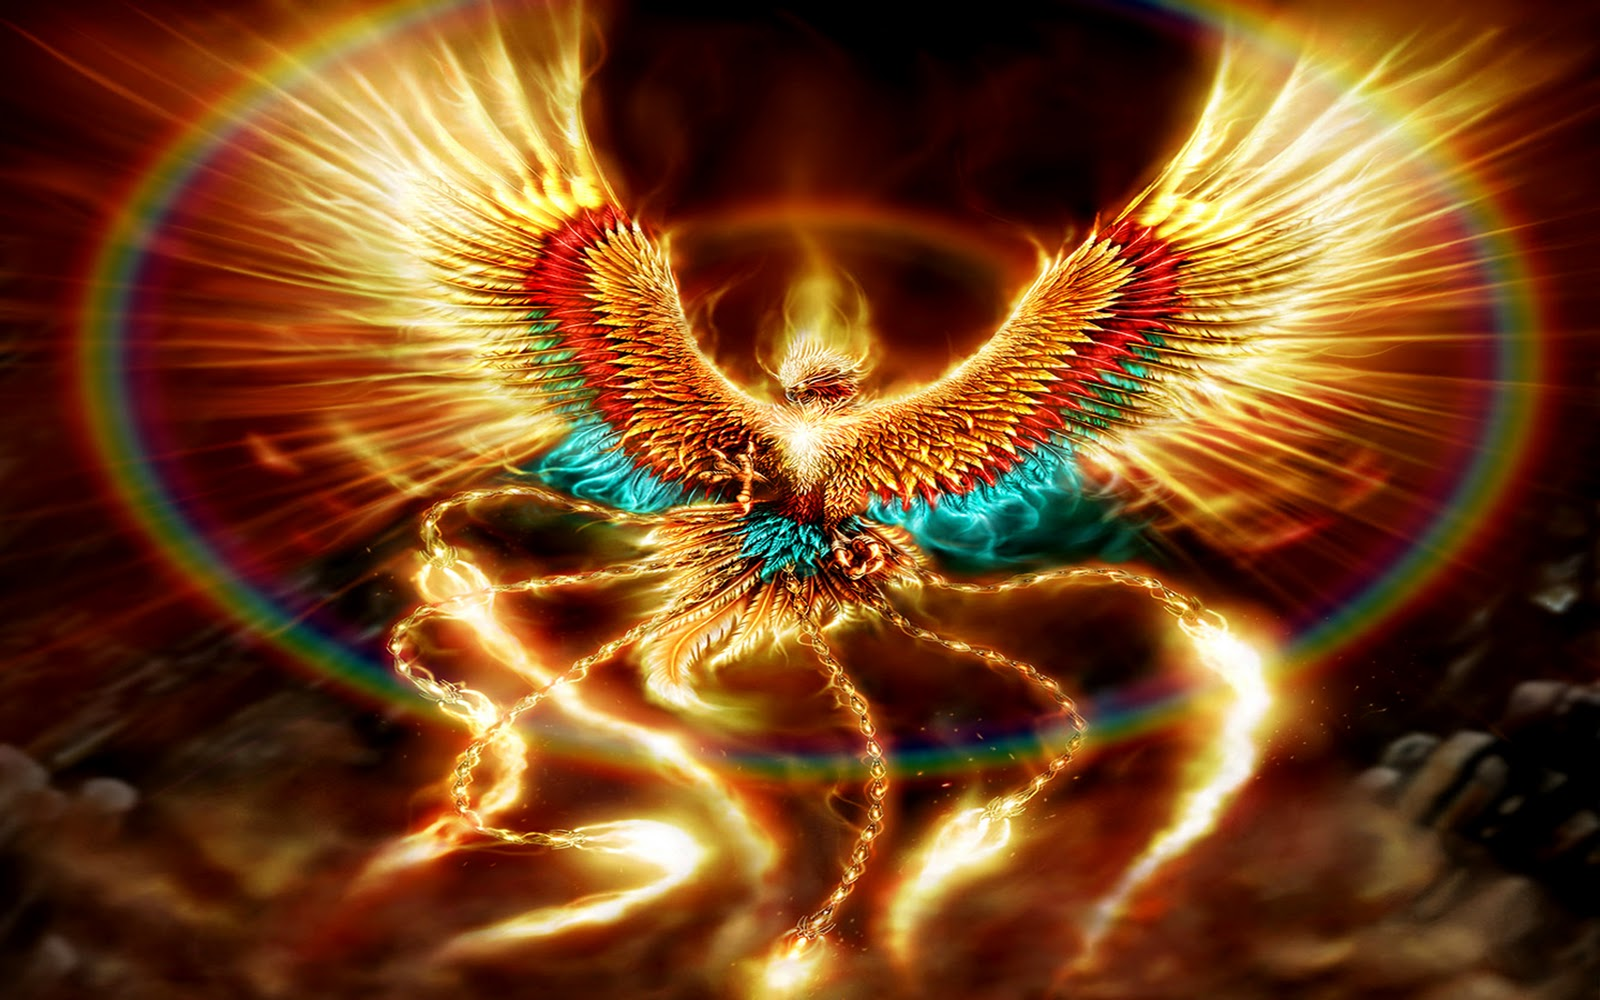 phoenix fantasy wallpaper fantasy wizard dragon desktop wallpaper 1600x1000